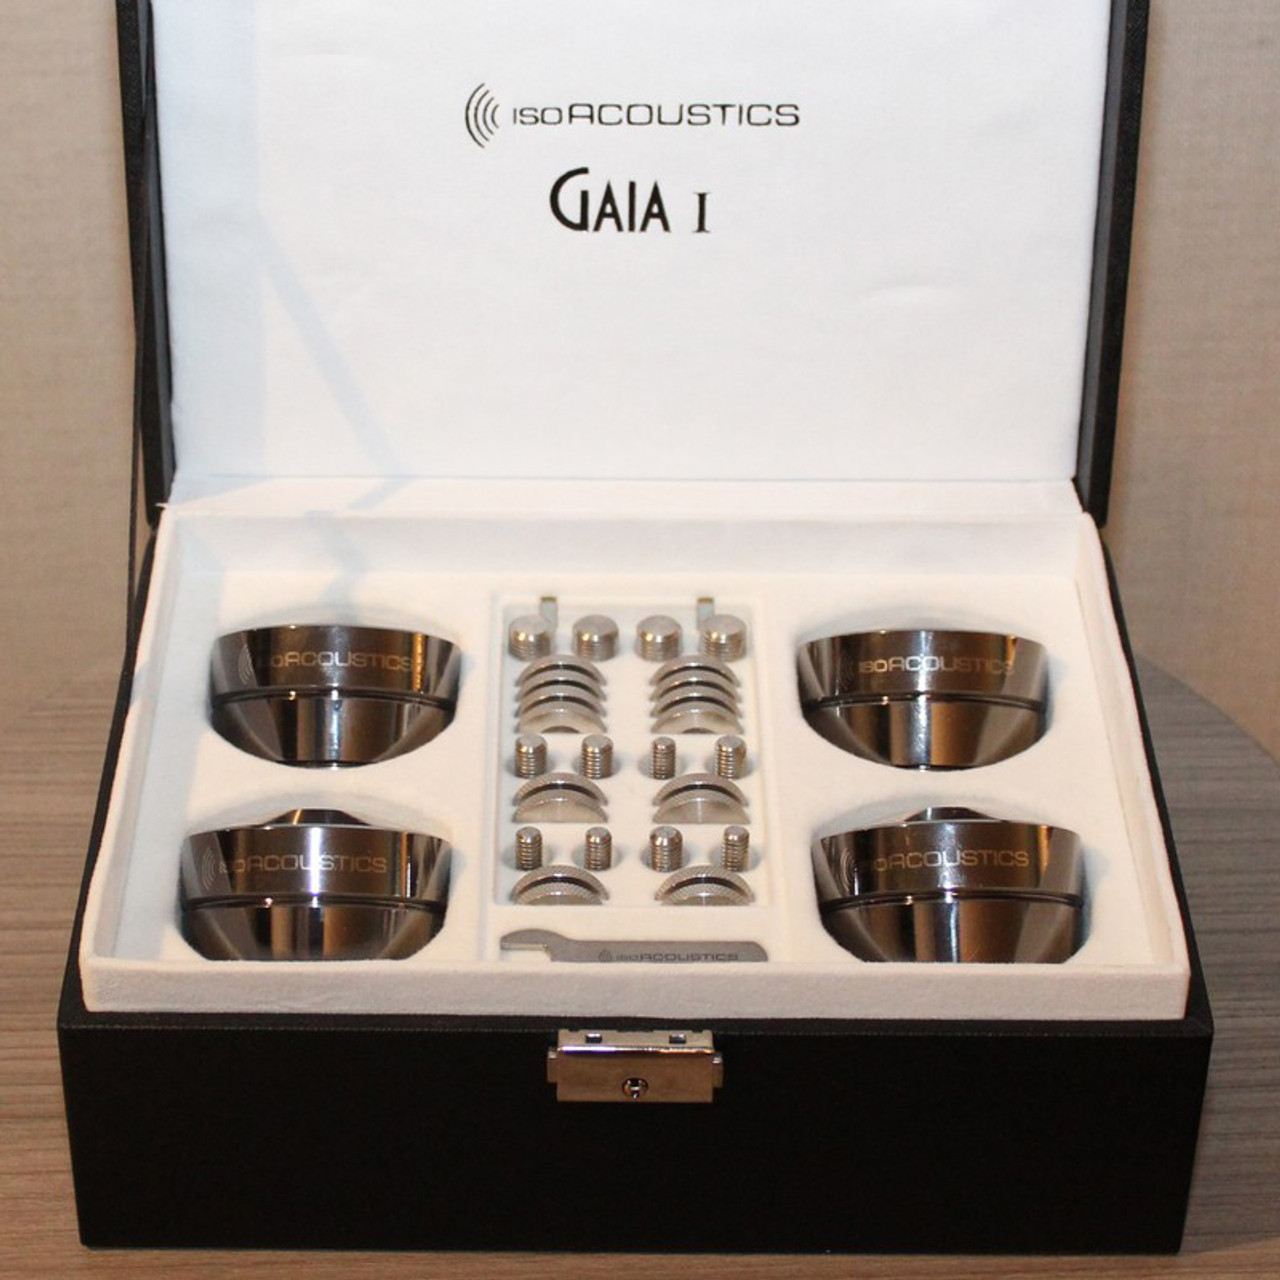 IsoAcoustics GAIA 1 footers